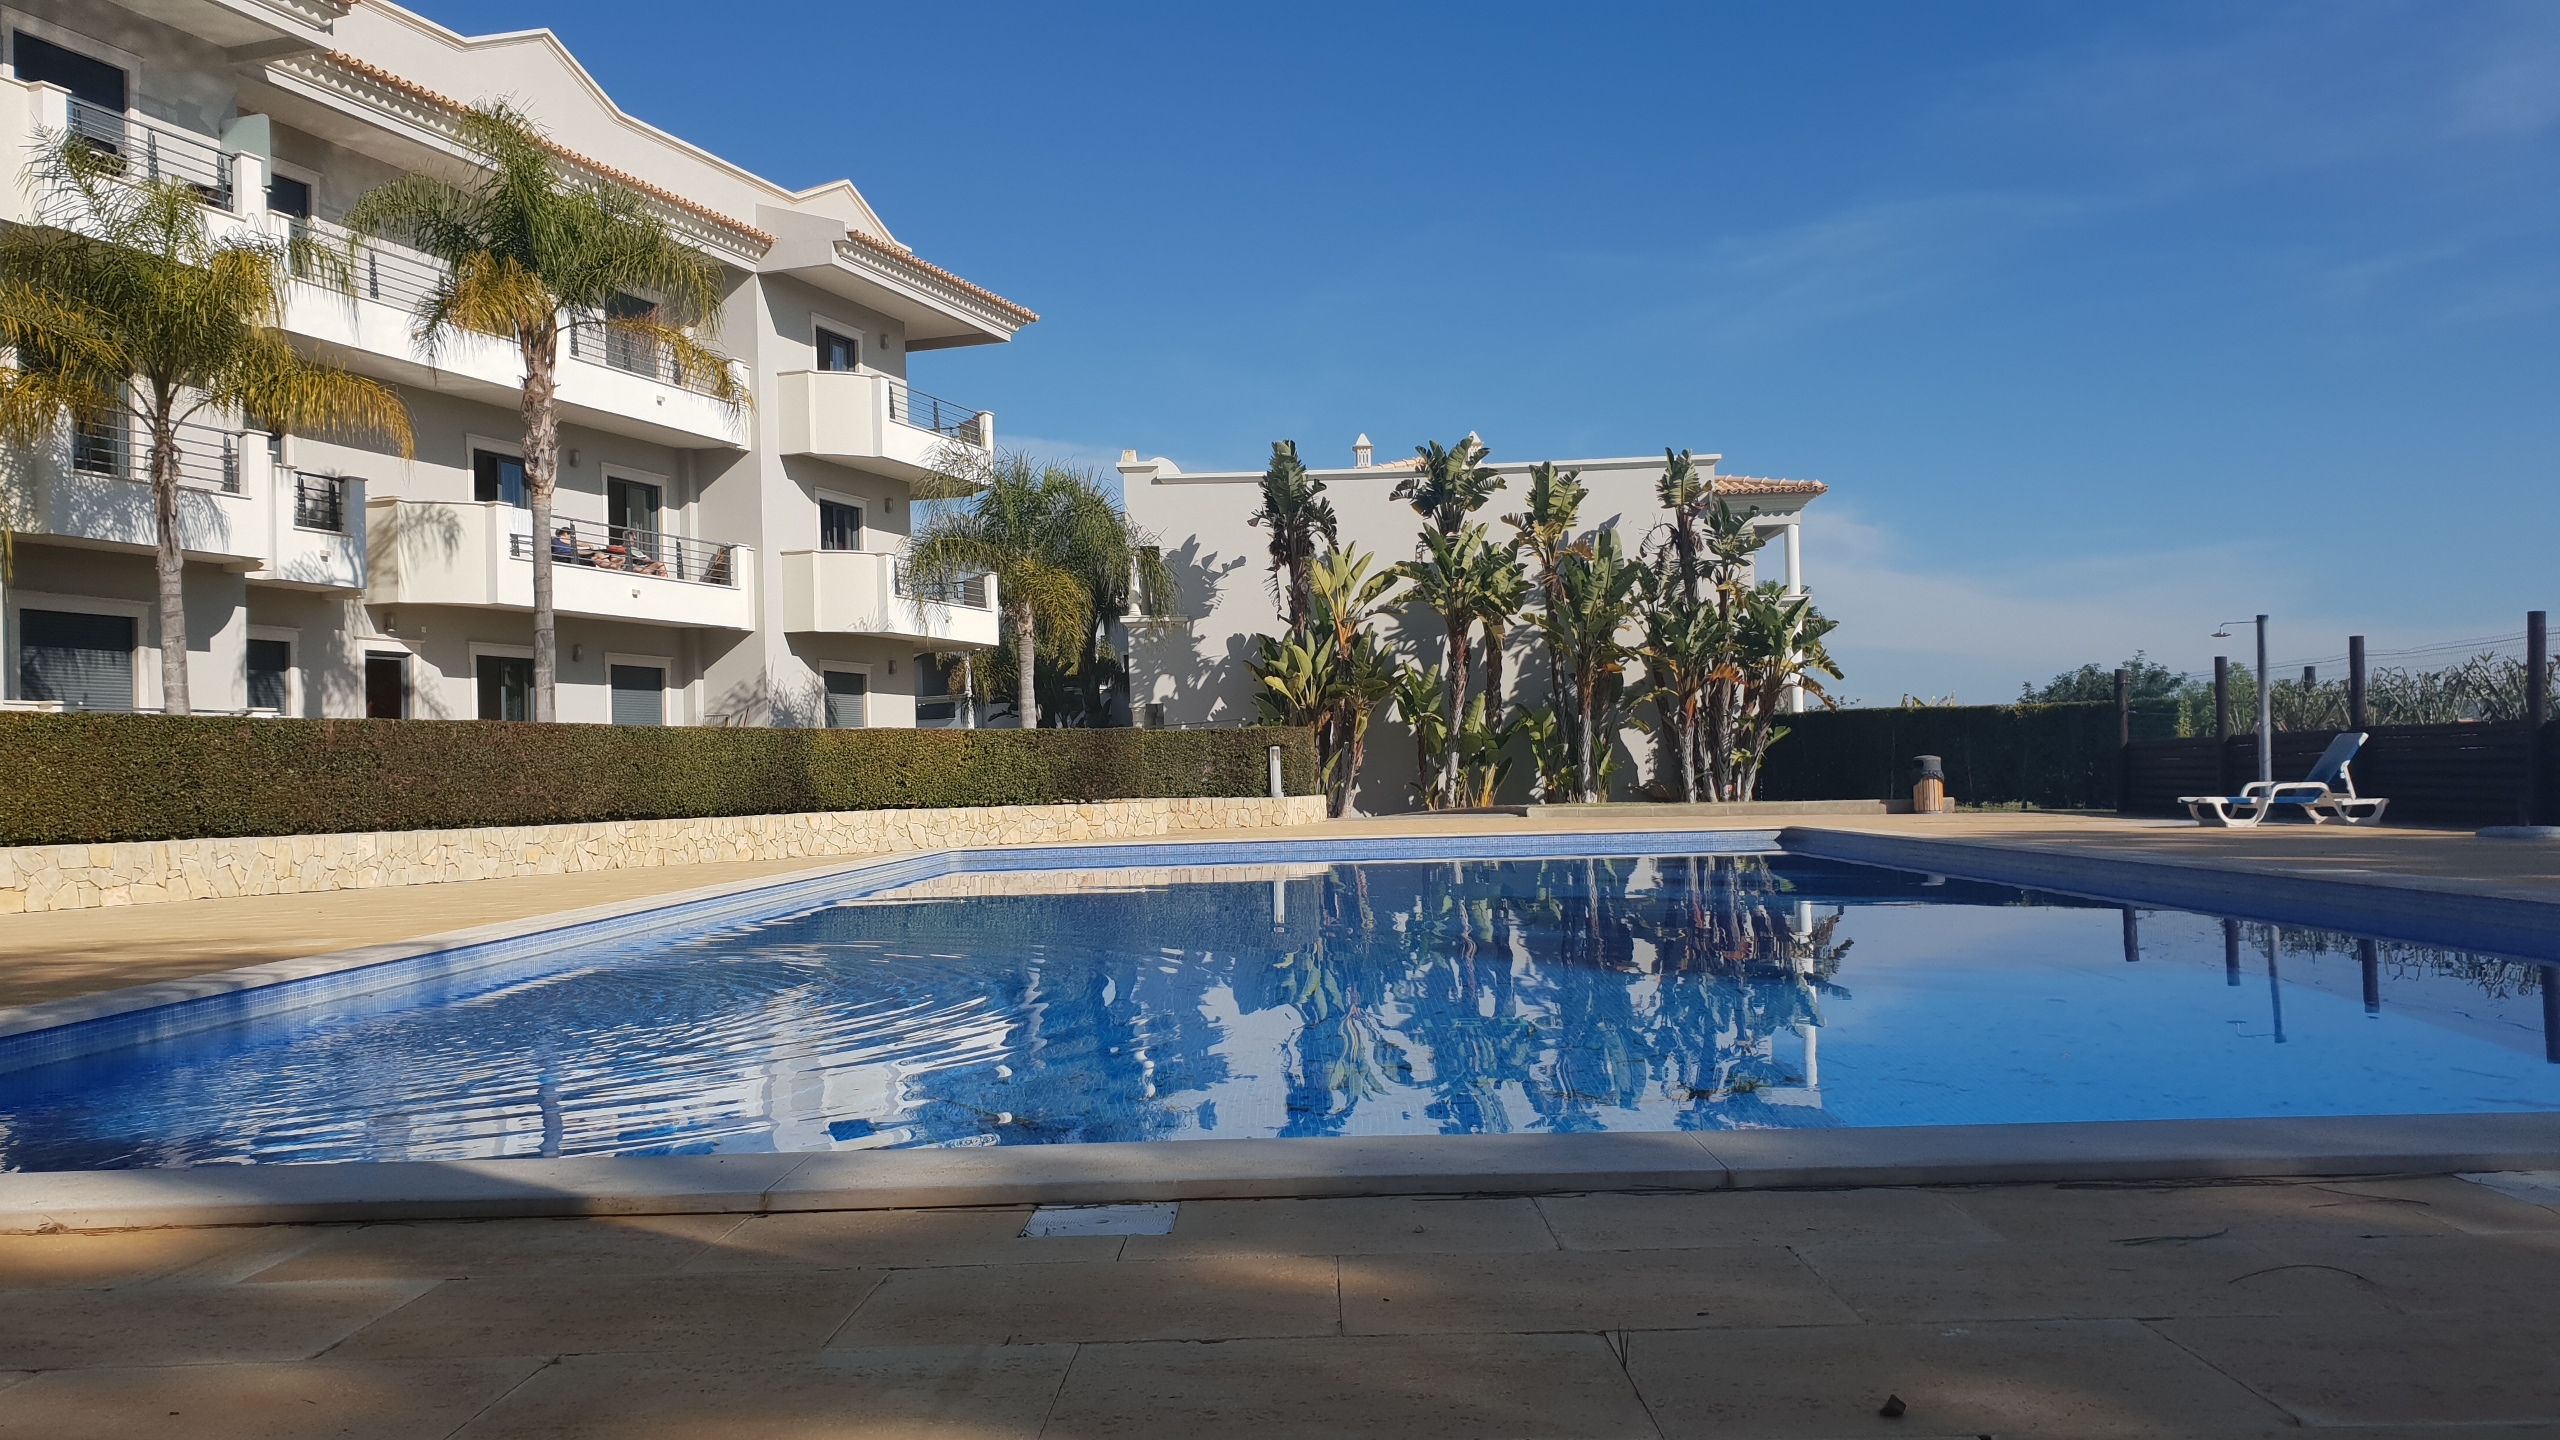 Holiday apartments and villas for rent, T1 Olhos de agua in Albufeira, Portugal Algarve, REF_IMG_10004_10014